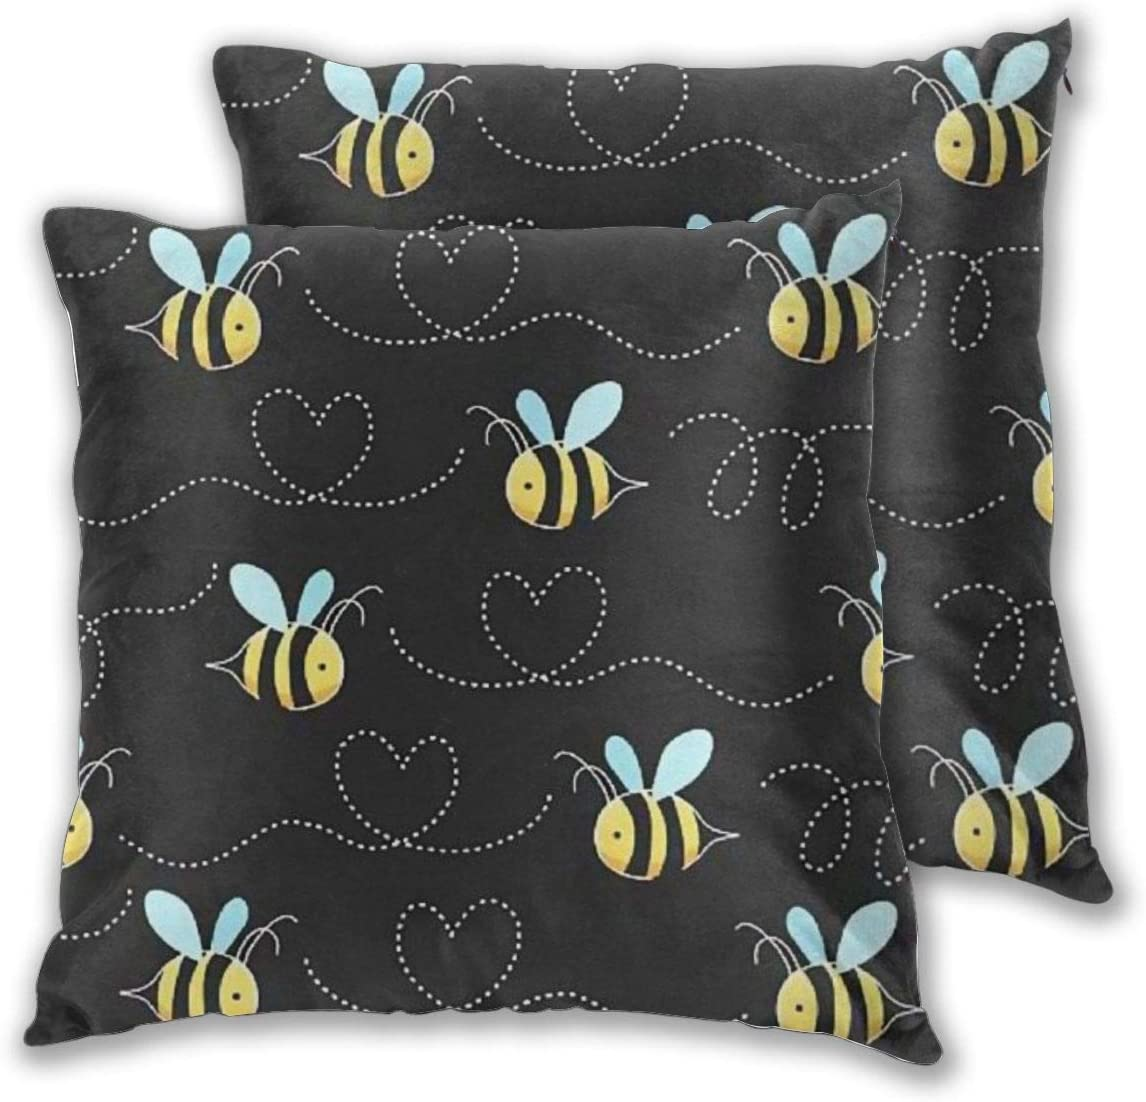 RALANG Pack of 2 Yellow Bumblebee Decorative Square Throw Pillow Covers Set Super Soft Cushion Case for Sofa Bedroom Car 18x18 Inch